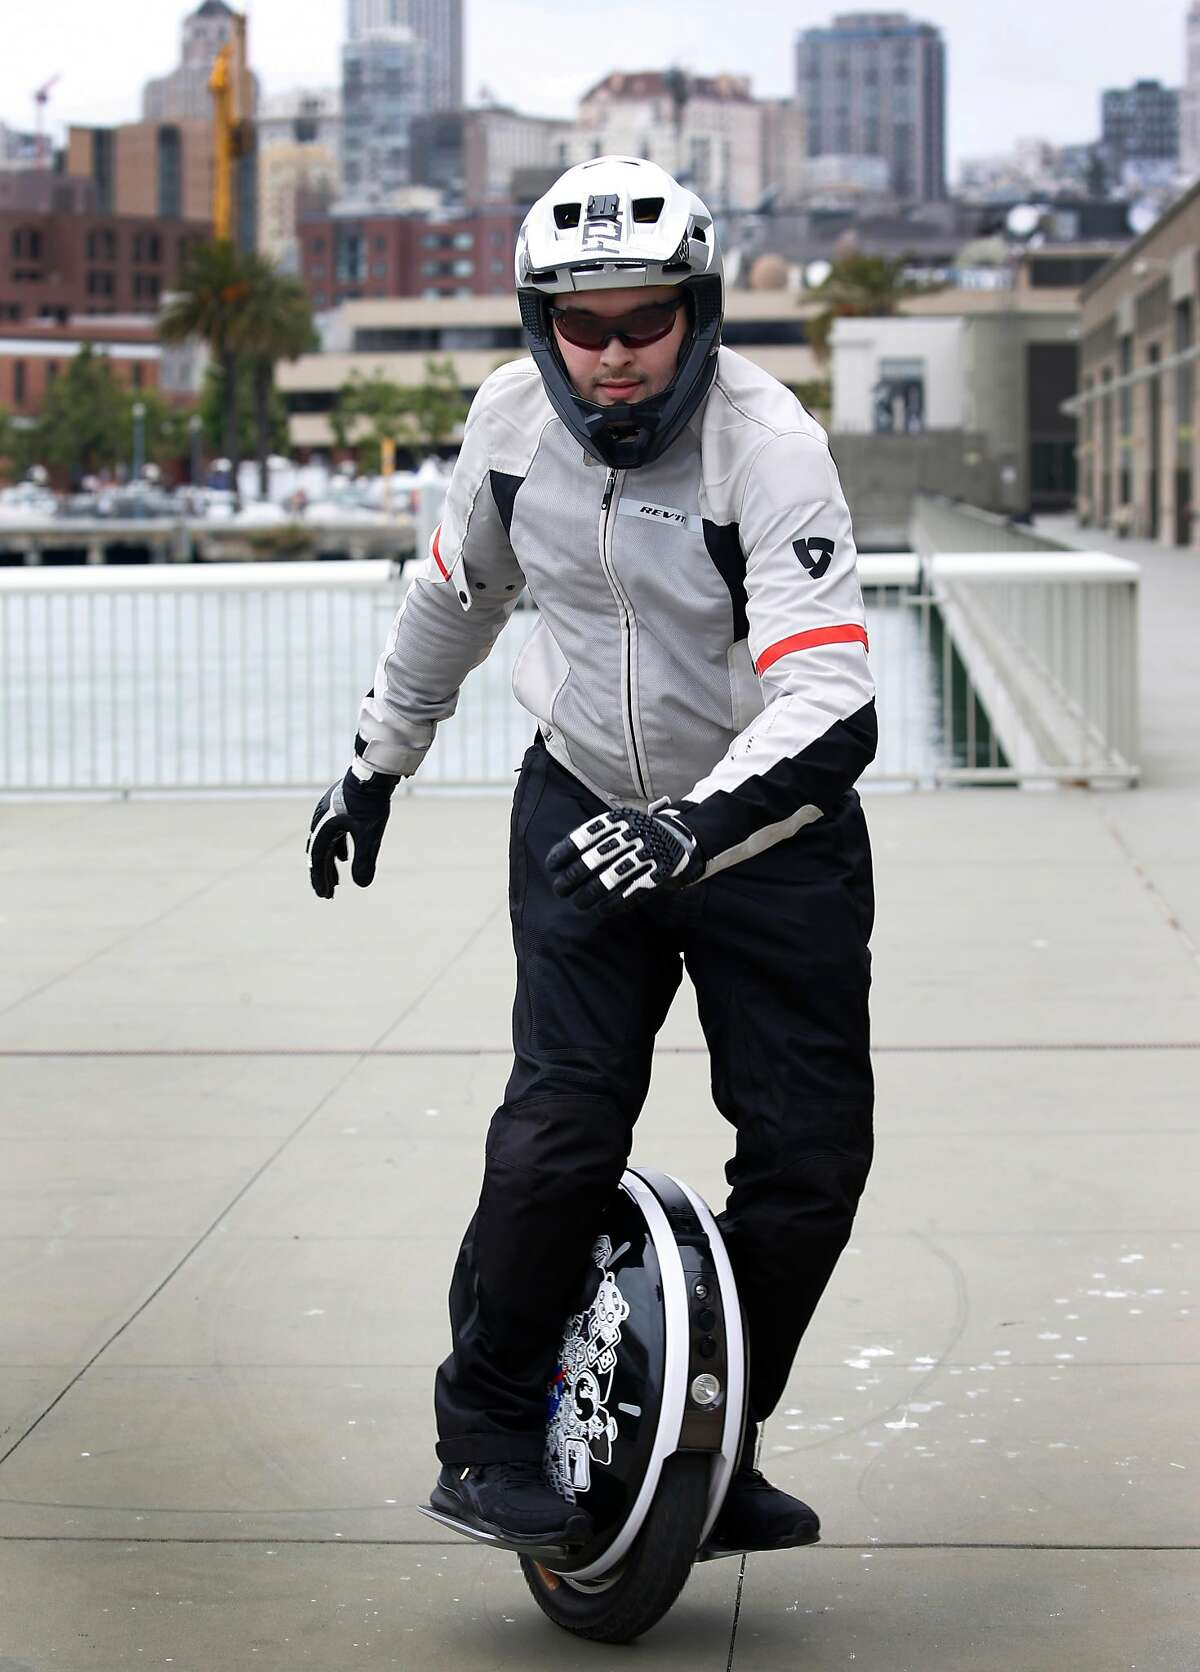 Kevin Grandon prepares for a weekly 23-mile group ride by members of Bay Area Esk8 at Pier 15 in San Francisco, Calif. on Saturday, June 15, 2019. Electric unicycles have become a popular mode of transportation.